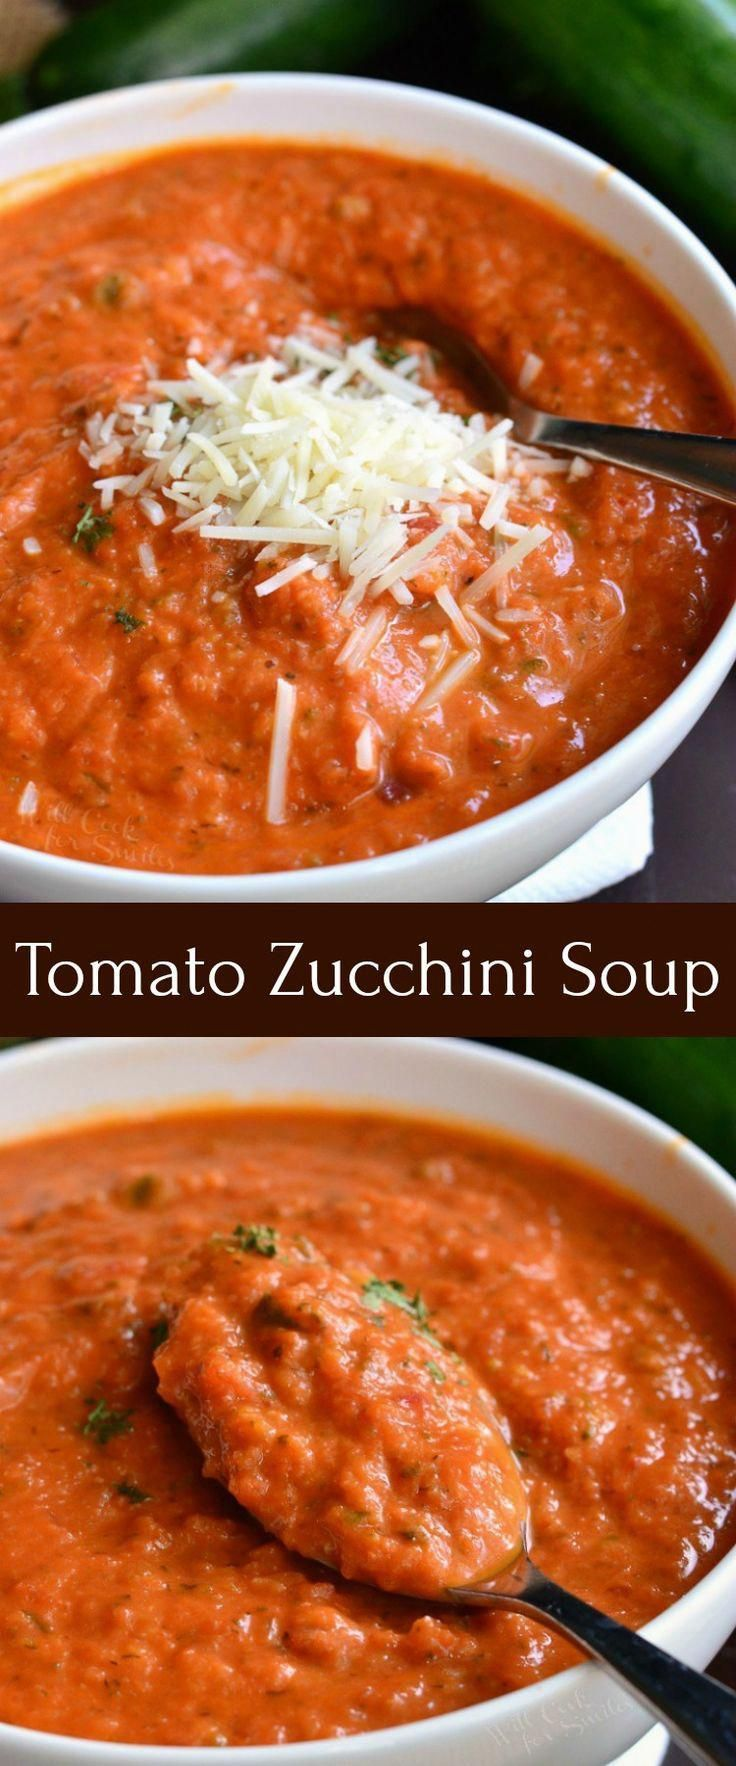 Zucchini Tomato Soup Recipe. Delightful, comforting, and easy tomato soup made with addition of fresh zucchini. It's creamy and made with some fresh grated Parmesan cheese. Serve it with some grilled cheese sticks for a fun lunch.